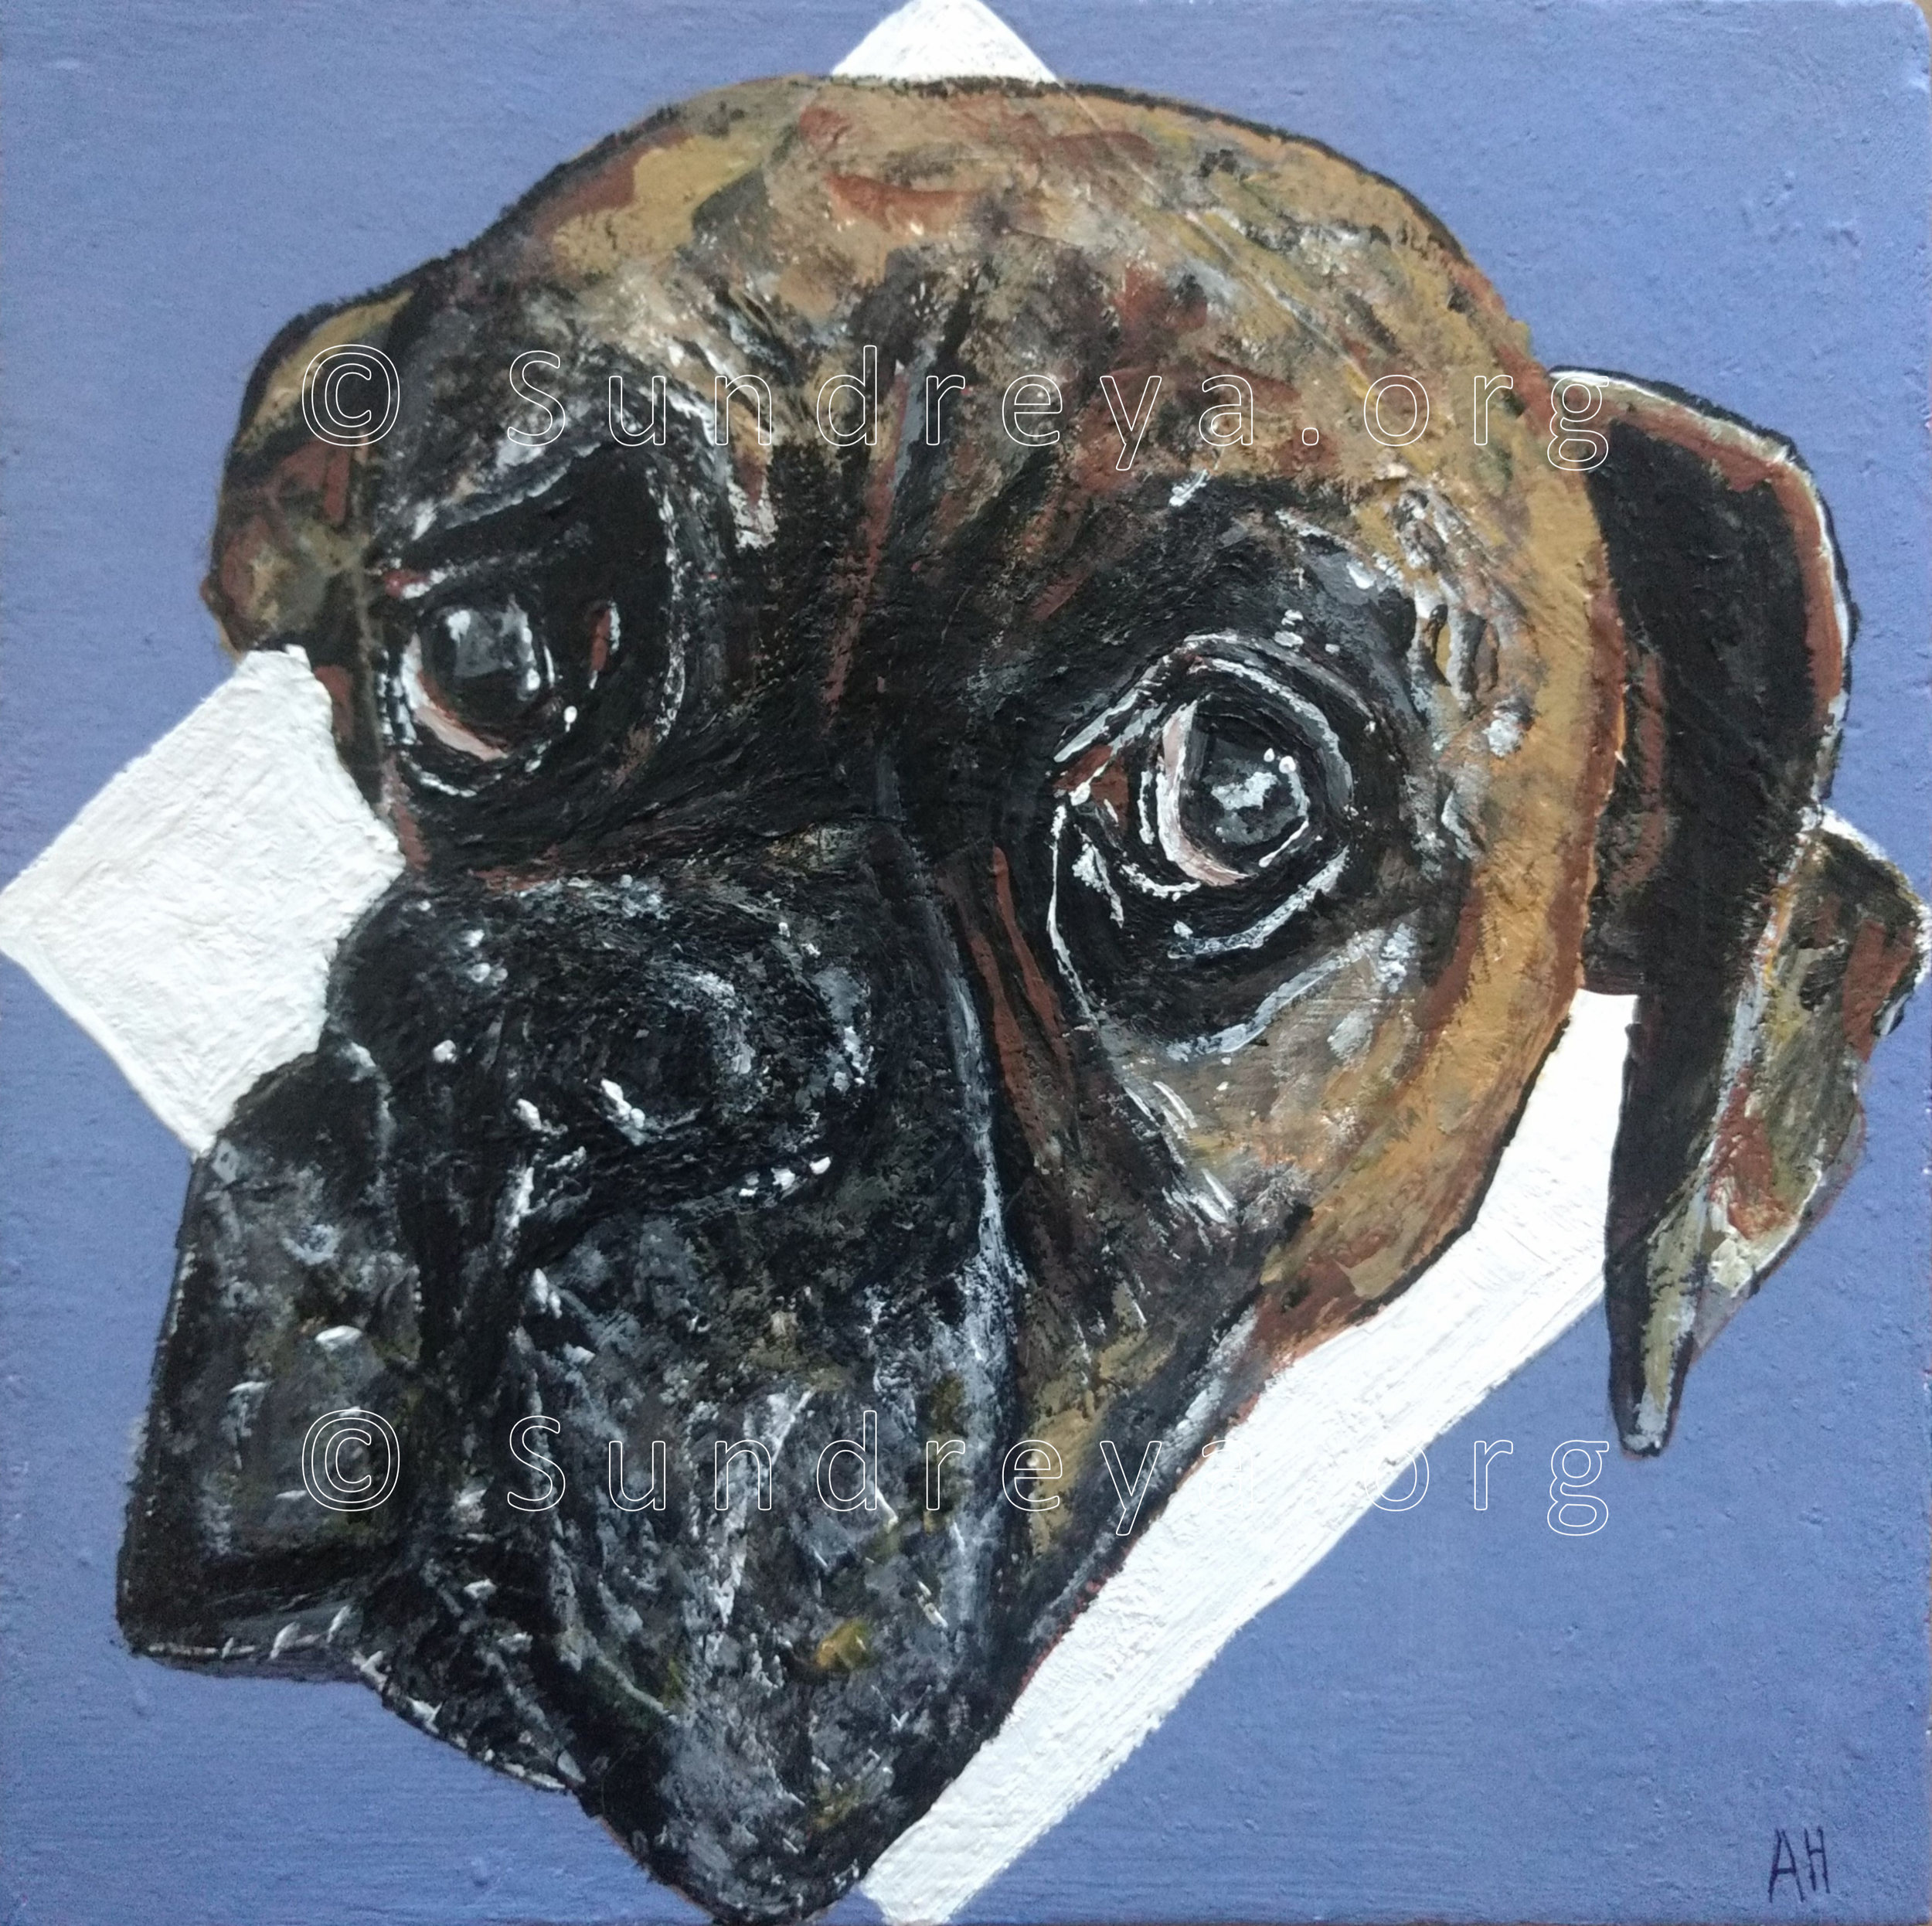 "Commissioned: Jeremy the Boxer, 6 x 6"" tile, acrylic with gloss finish"